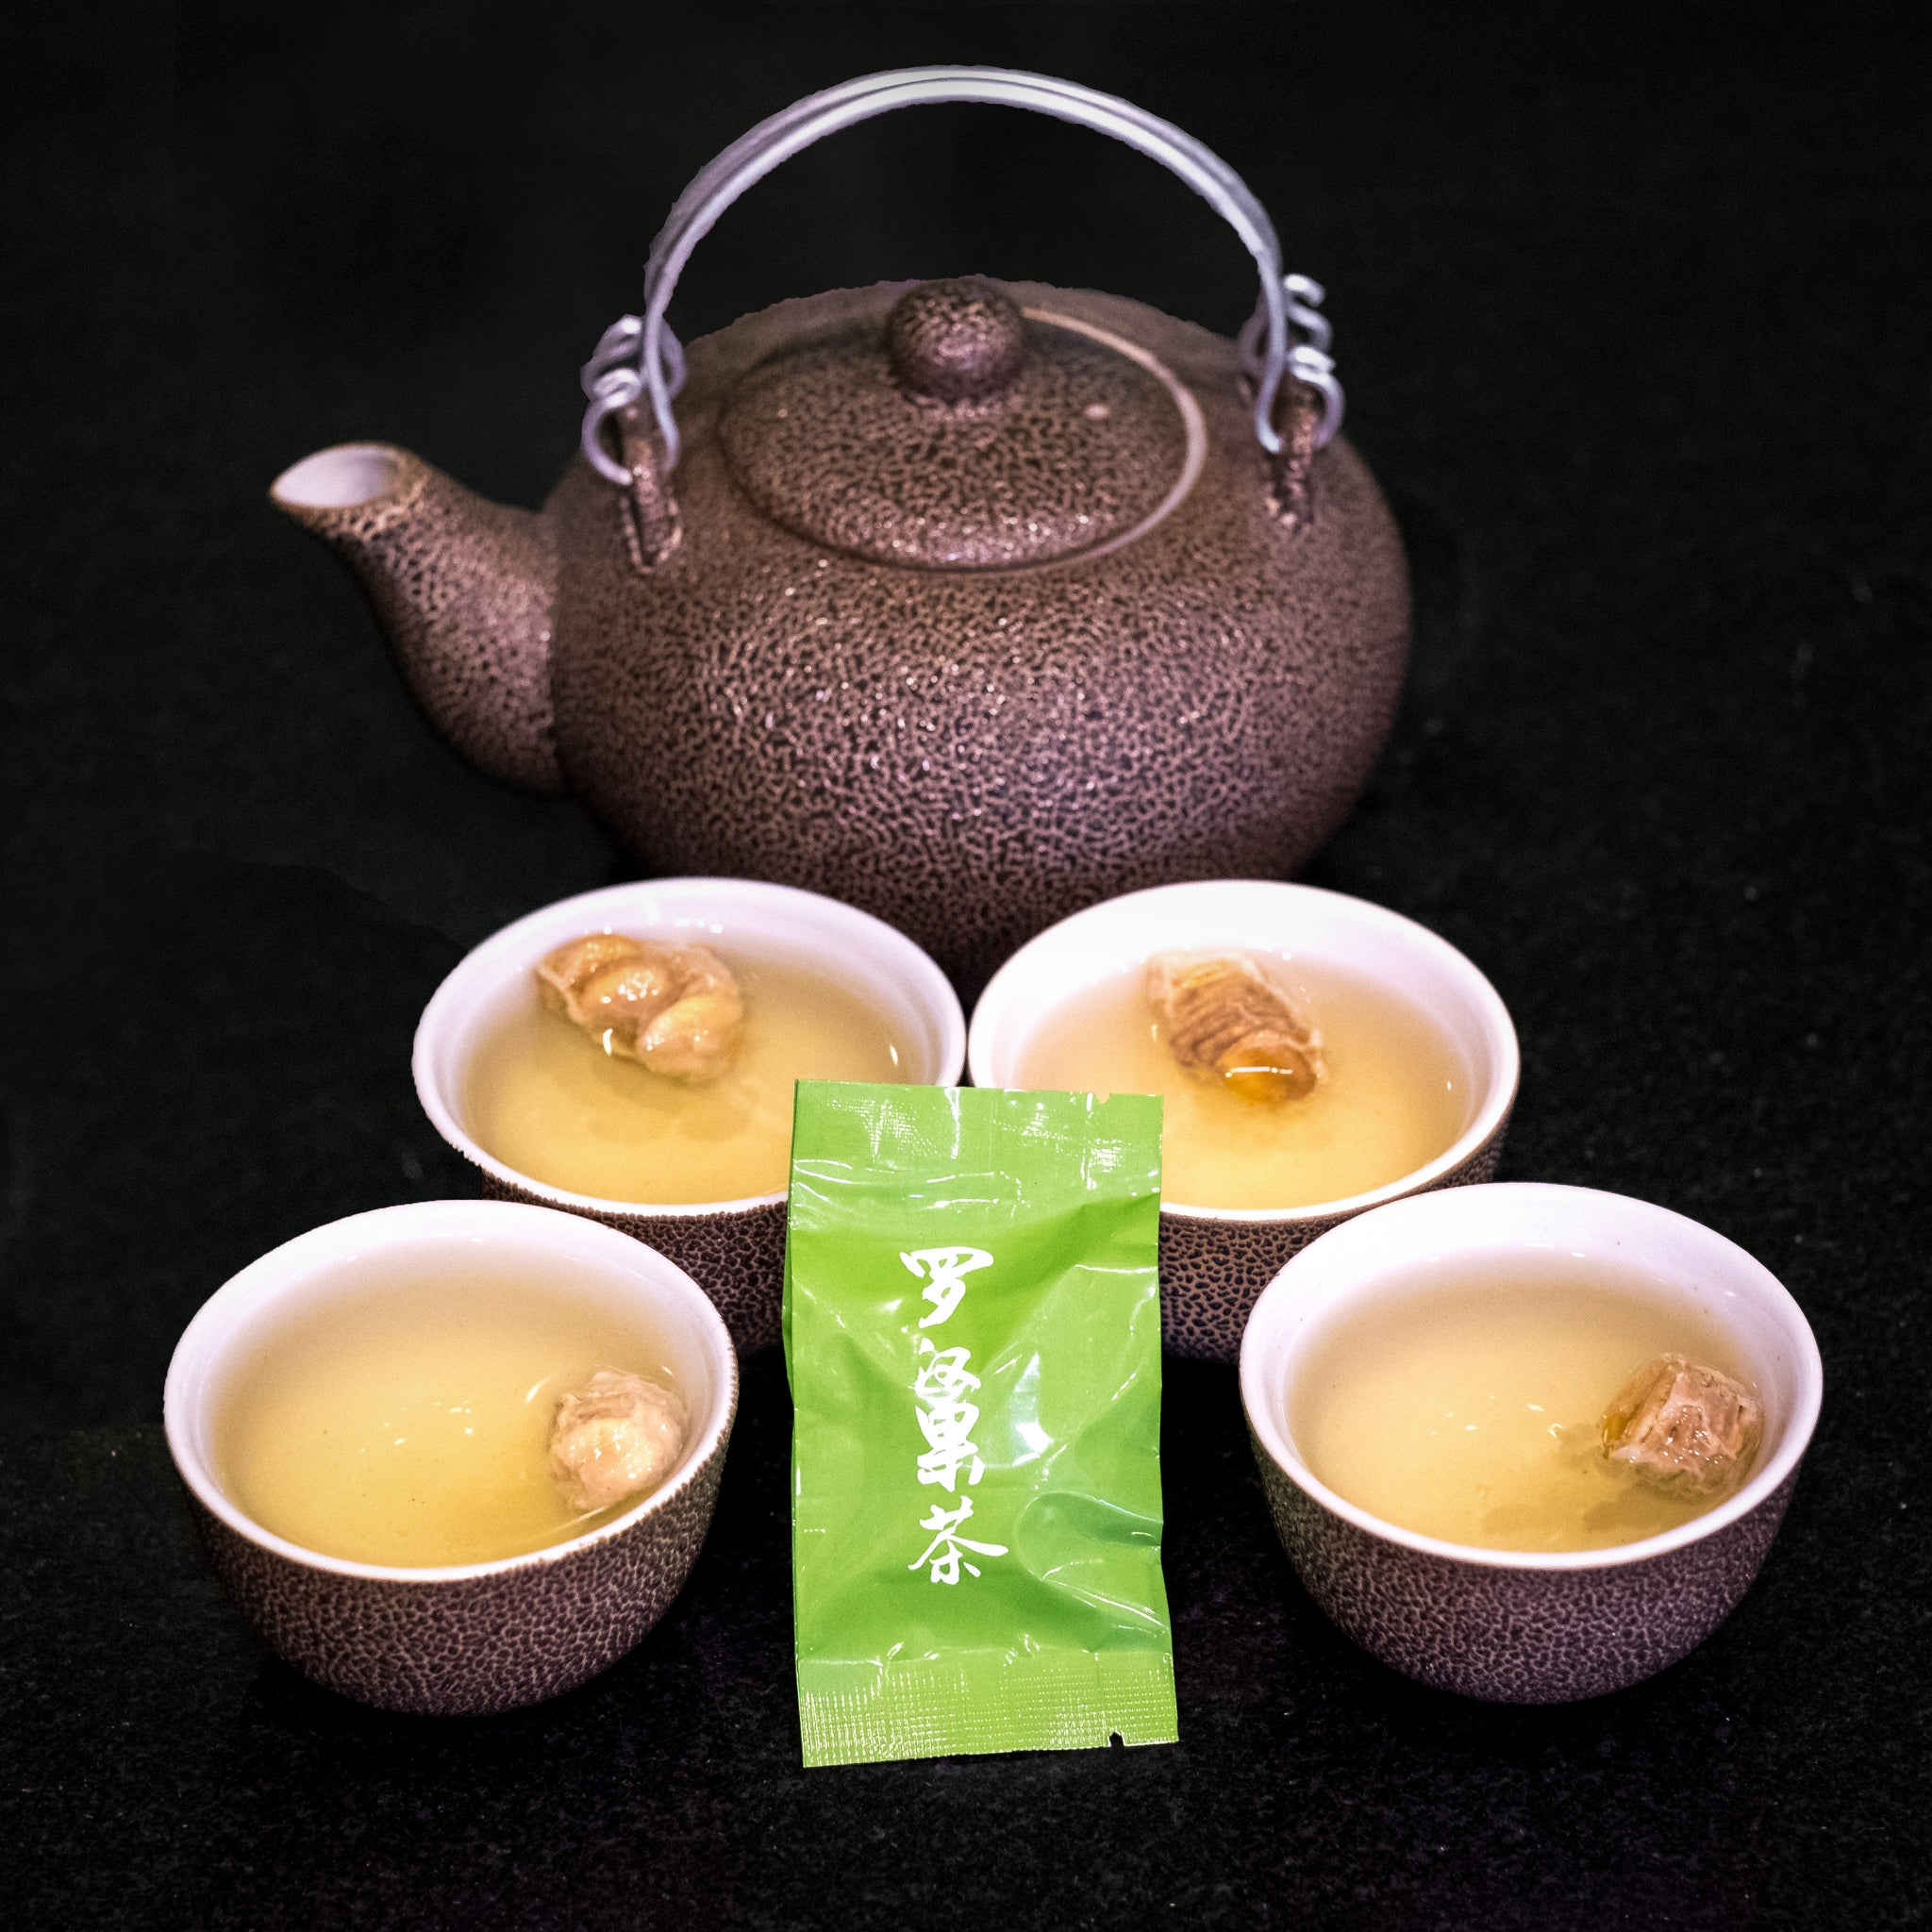 Fire Roasted Monk Fruit Tea